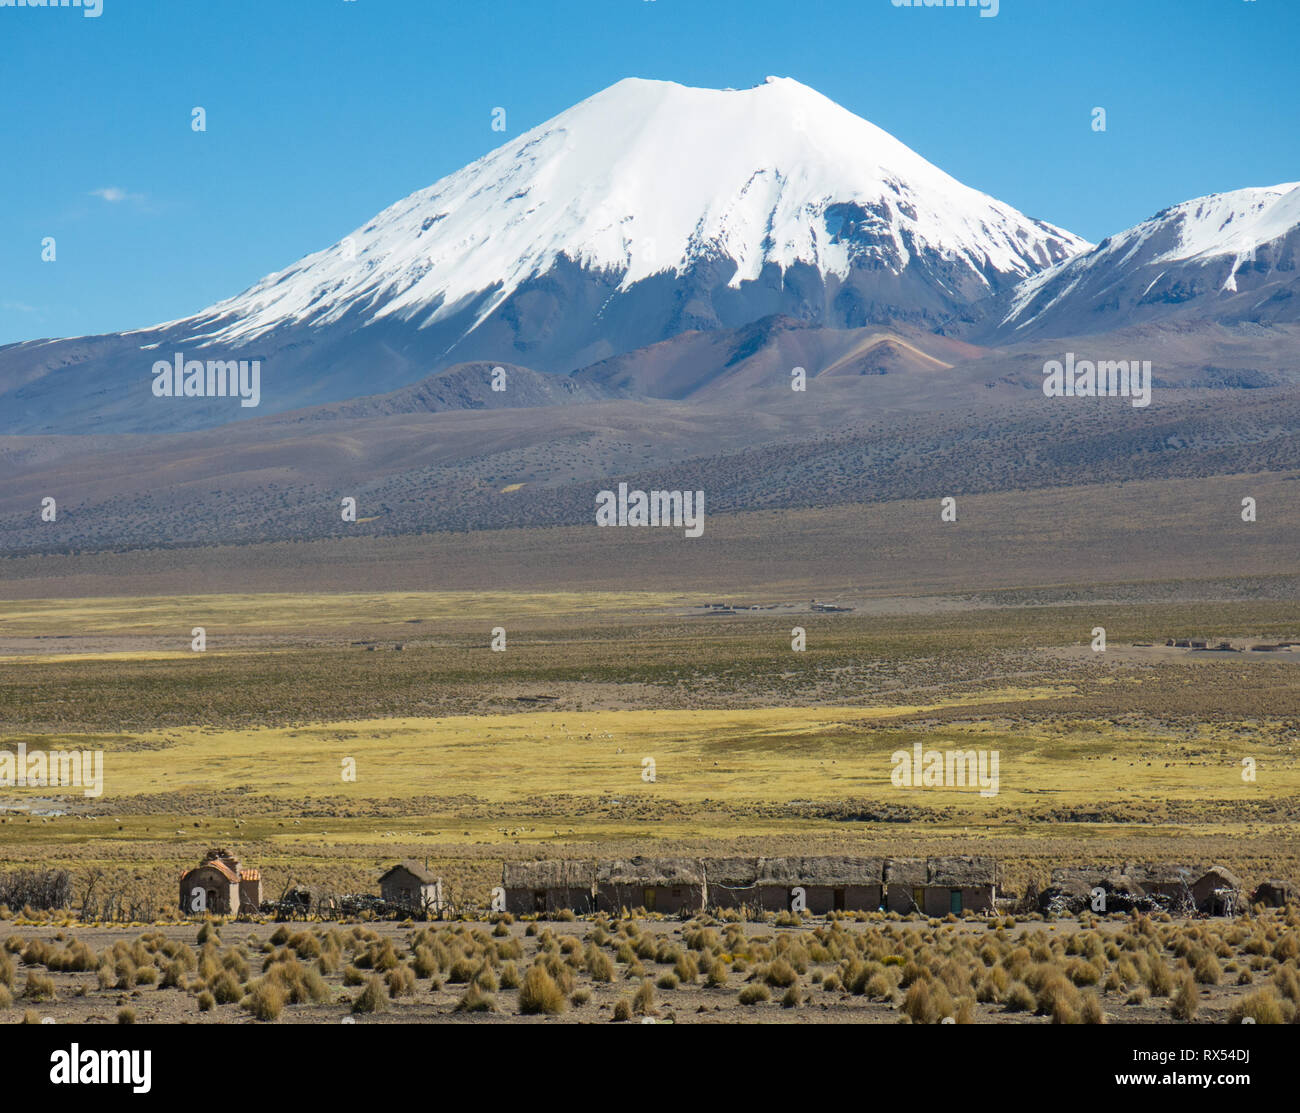 Parinacota volcano. High Andean landscape in the Andes. High Andean tundra landscape in the mountains of the Andes. The weather Andean Highlands Puna  - Stock Image